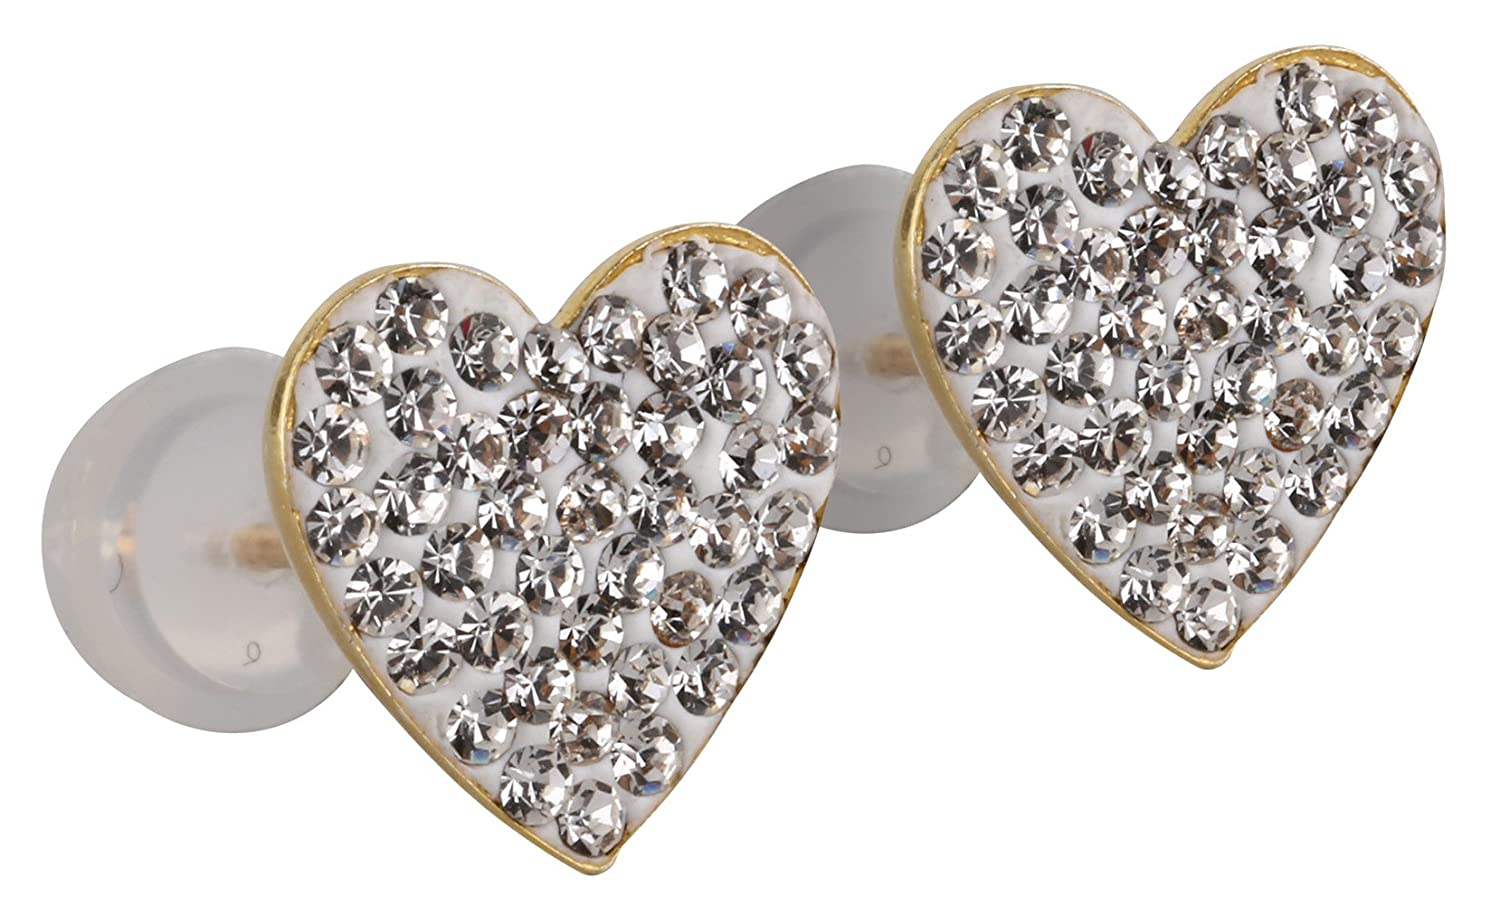 14k Yellow Gold and Copper Heart Shape Stud Earrings with Swarovski Elements Crystals Choice of Colors